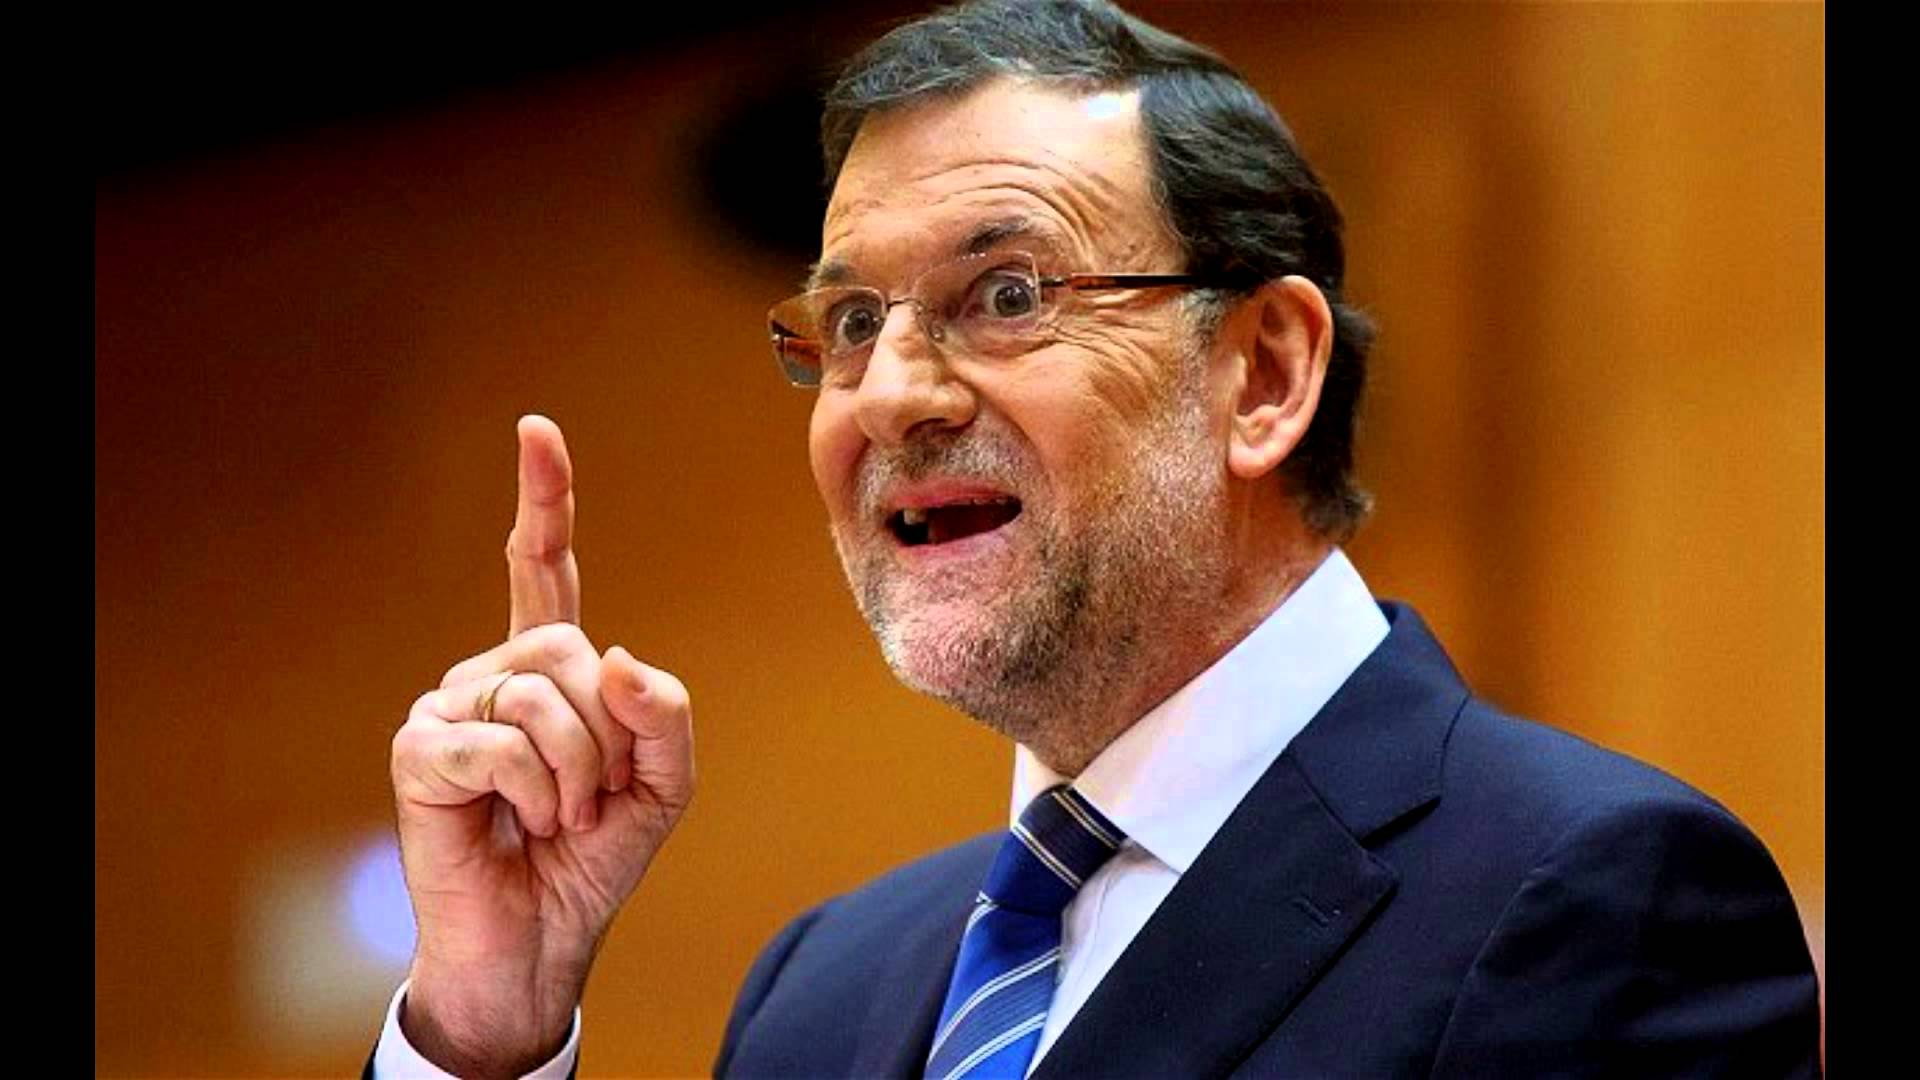 Buying Elections >> Rajoy to Visit Torrevieja and Santa Pola | This Is Torrevieja